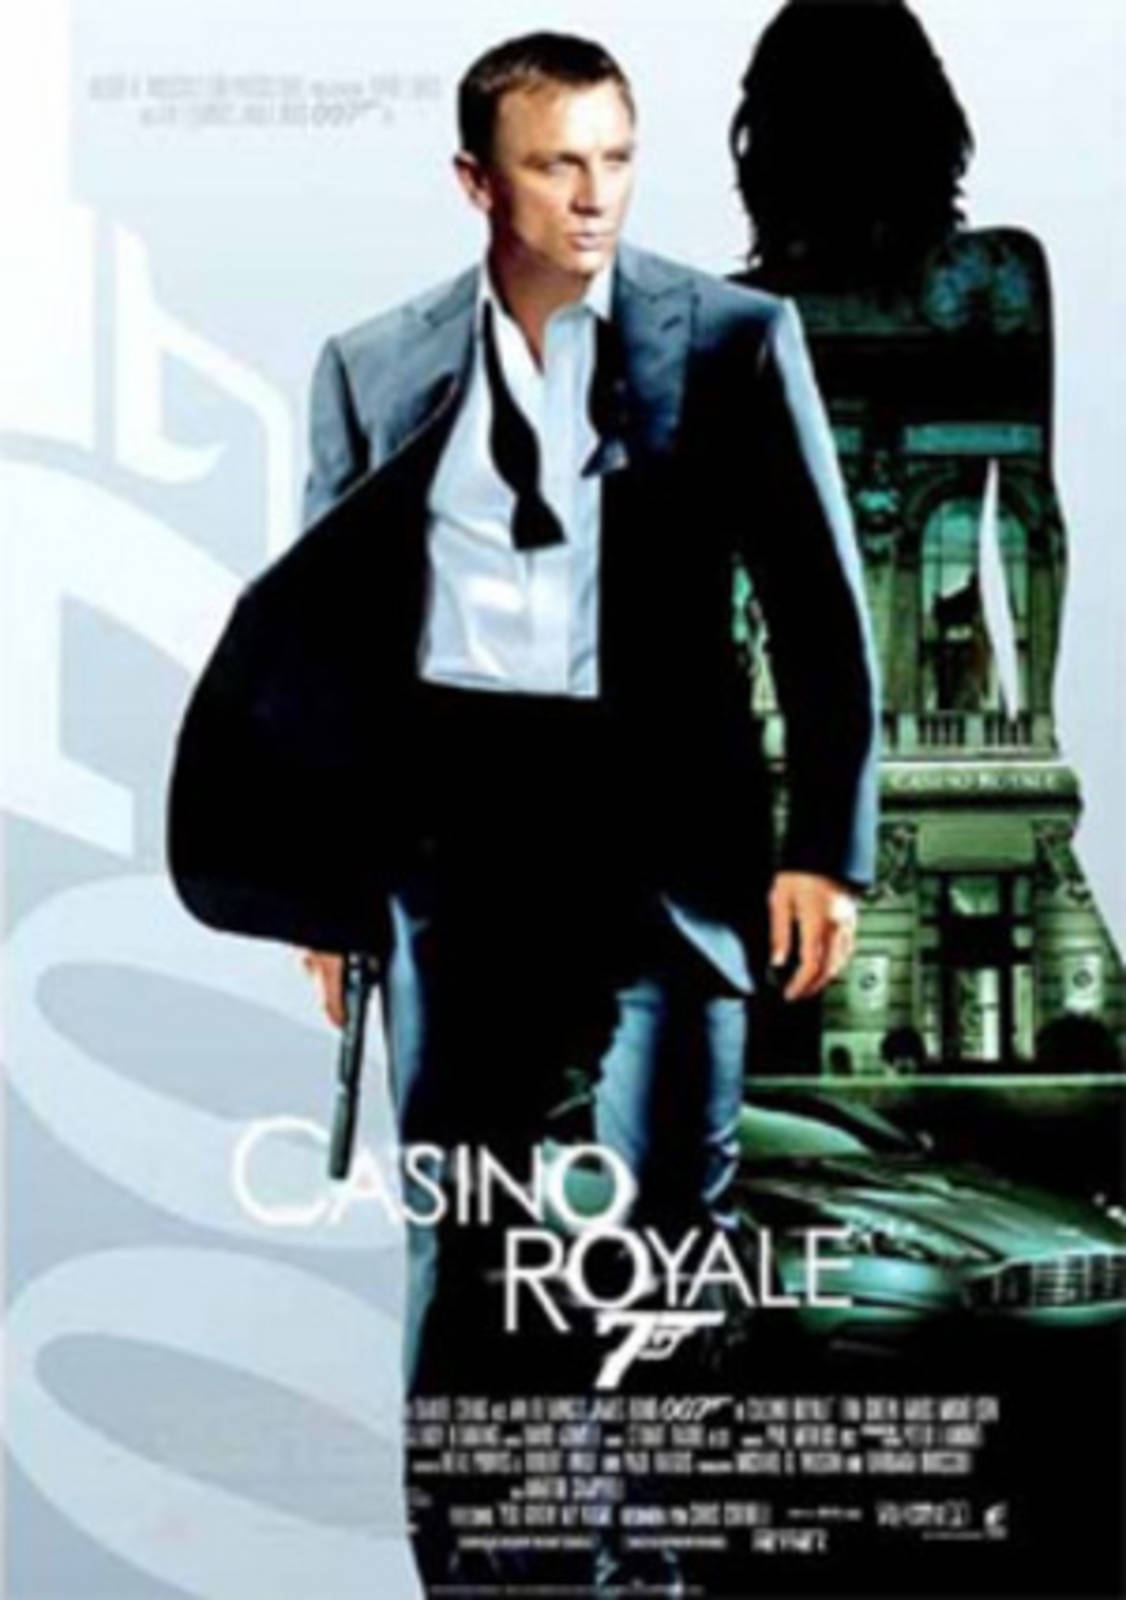 james bond casino royal ende erklärung